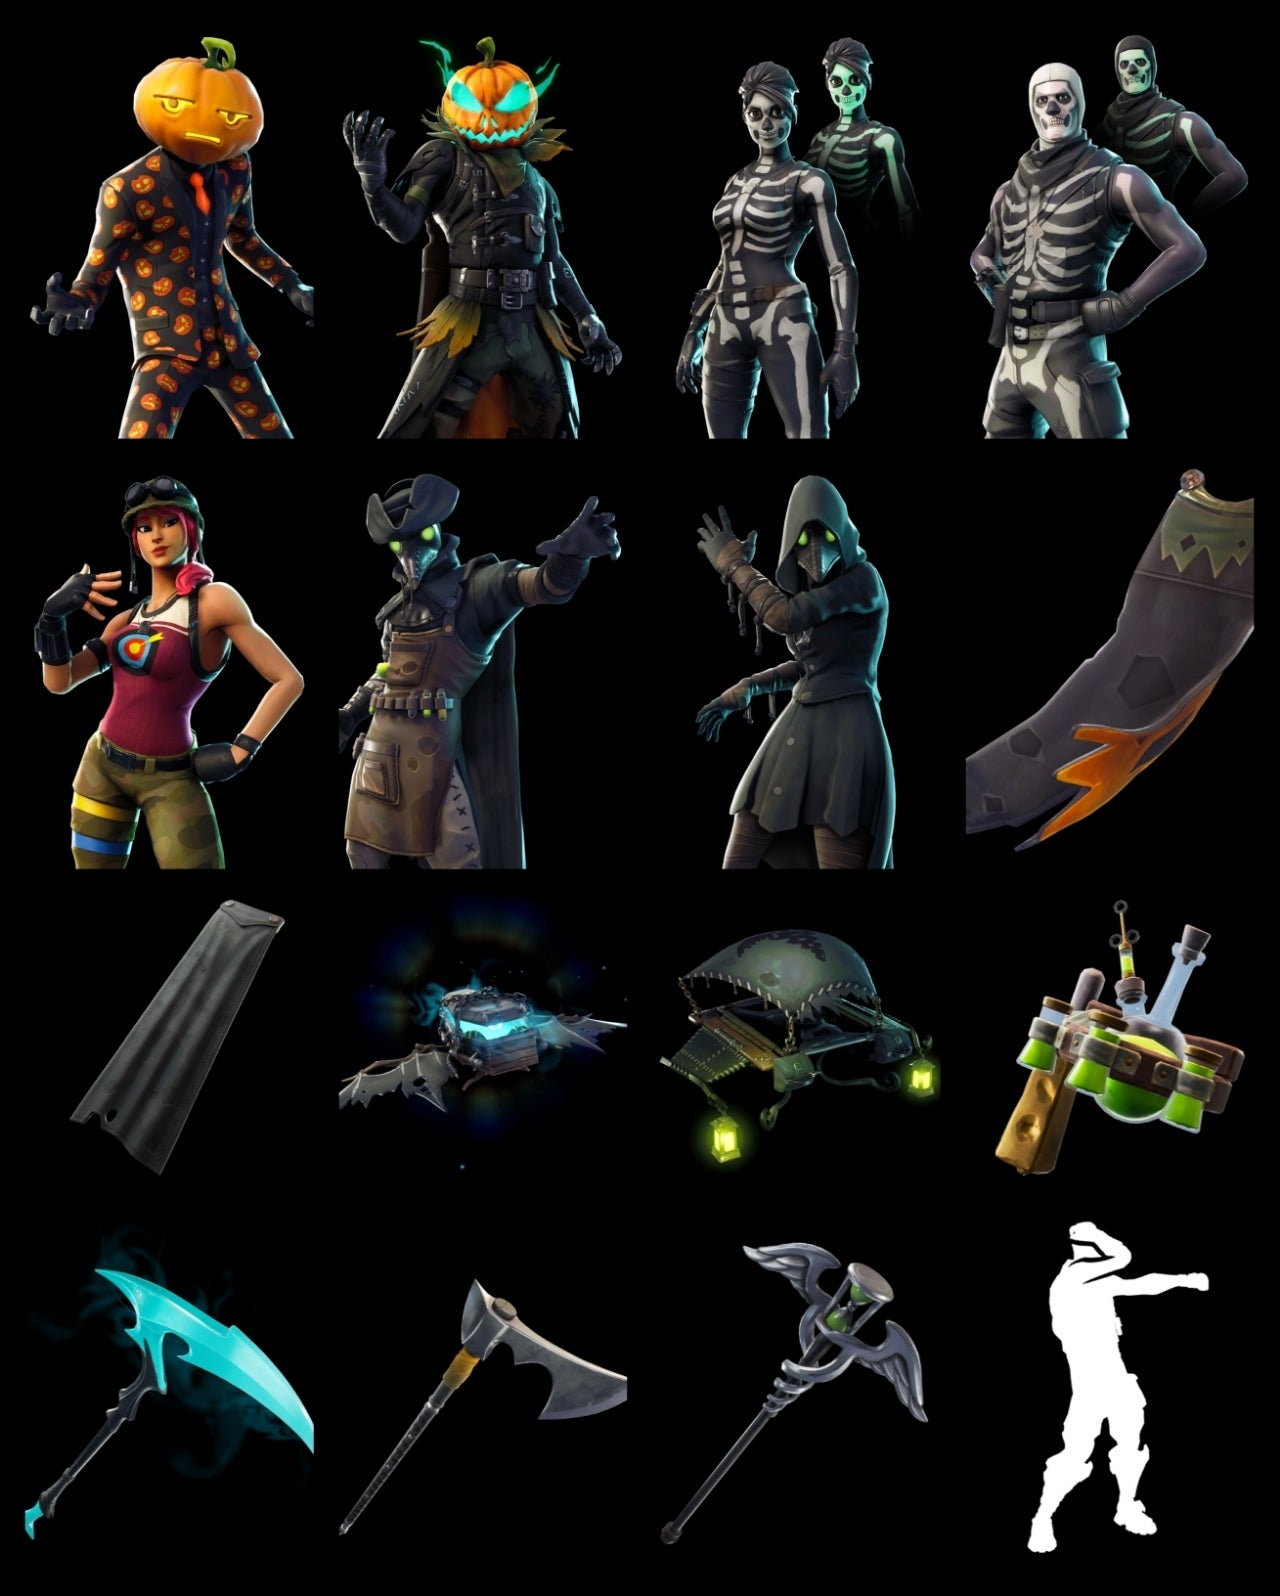 'Fortnite' Halloween Cosmetics Leaked